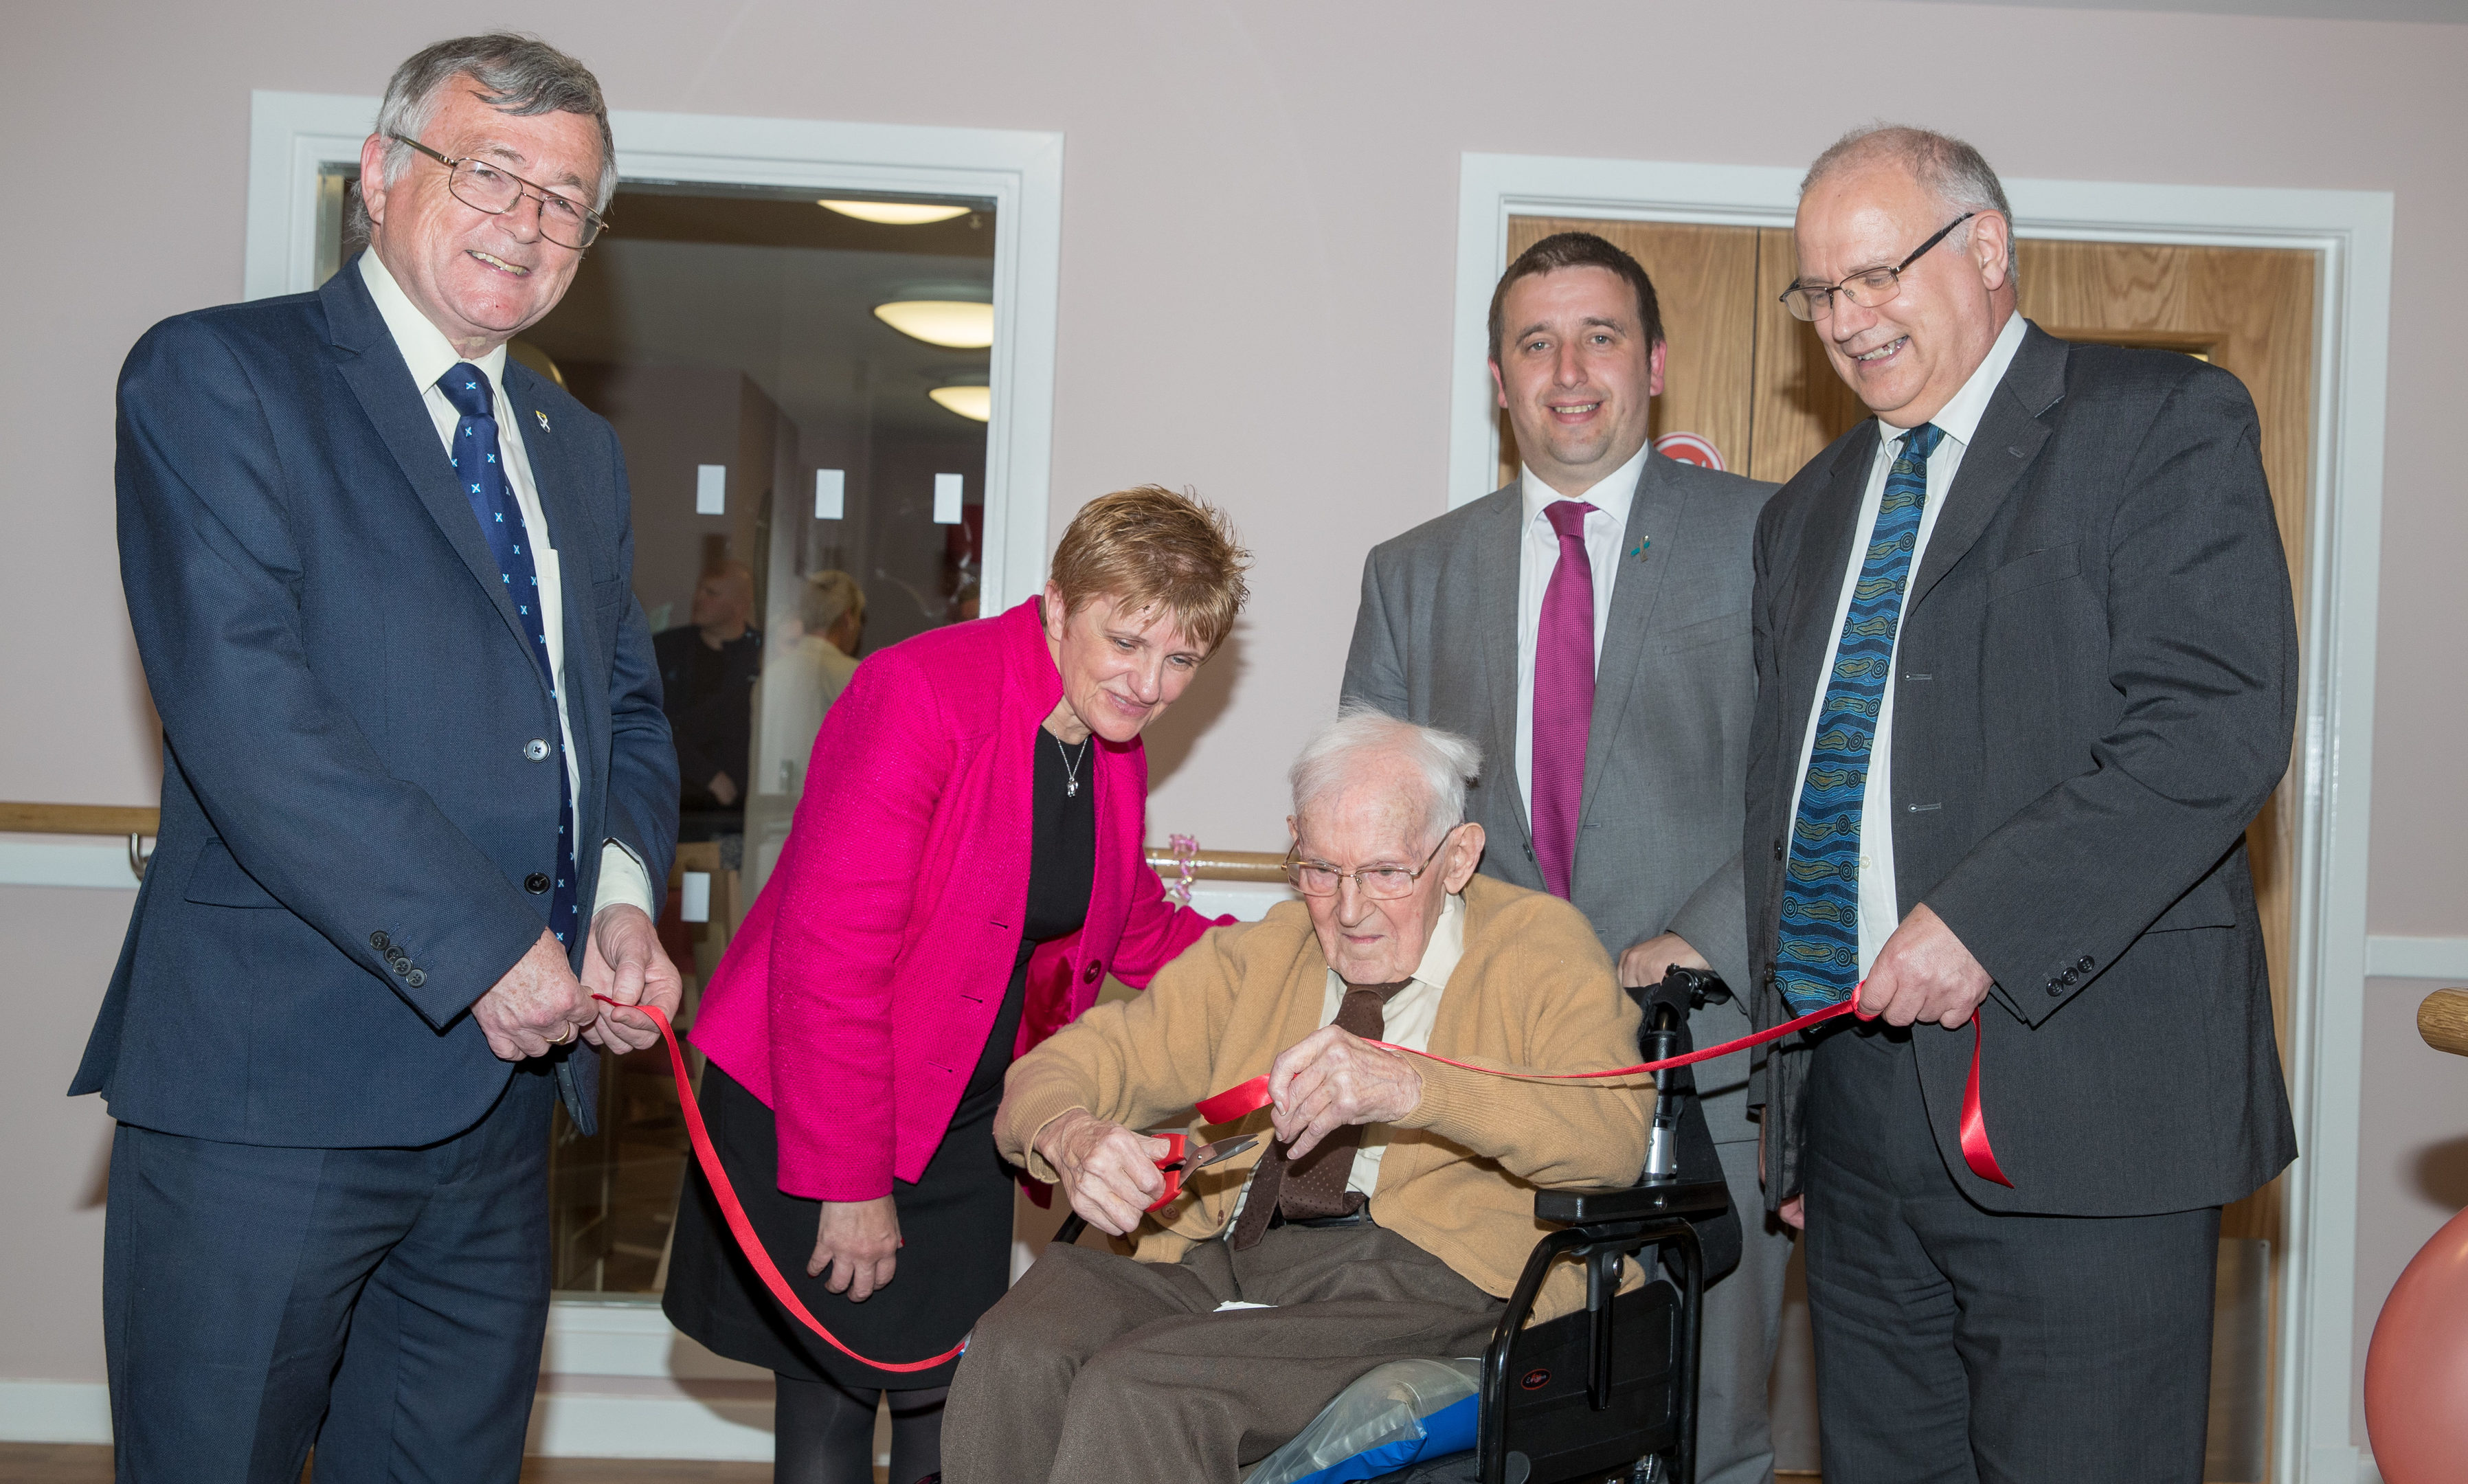 Councilors David Alexander, Judy Hamilton, David Graham and David Ross help Lindsay Houses oldest resident, 99-year-old James Oliver, with the opening ceremony